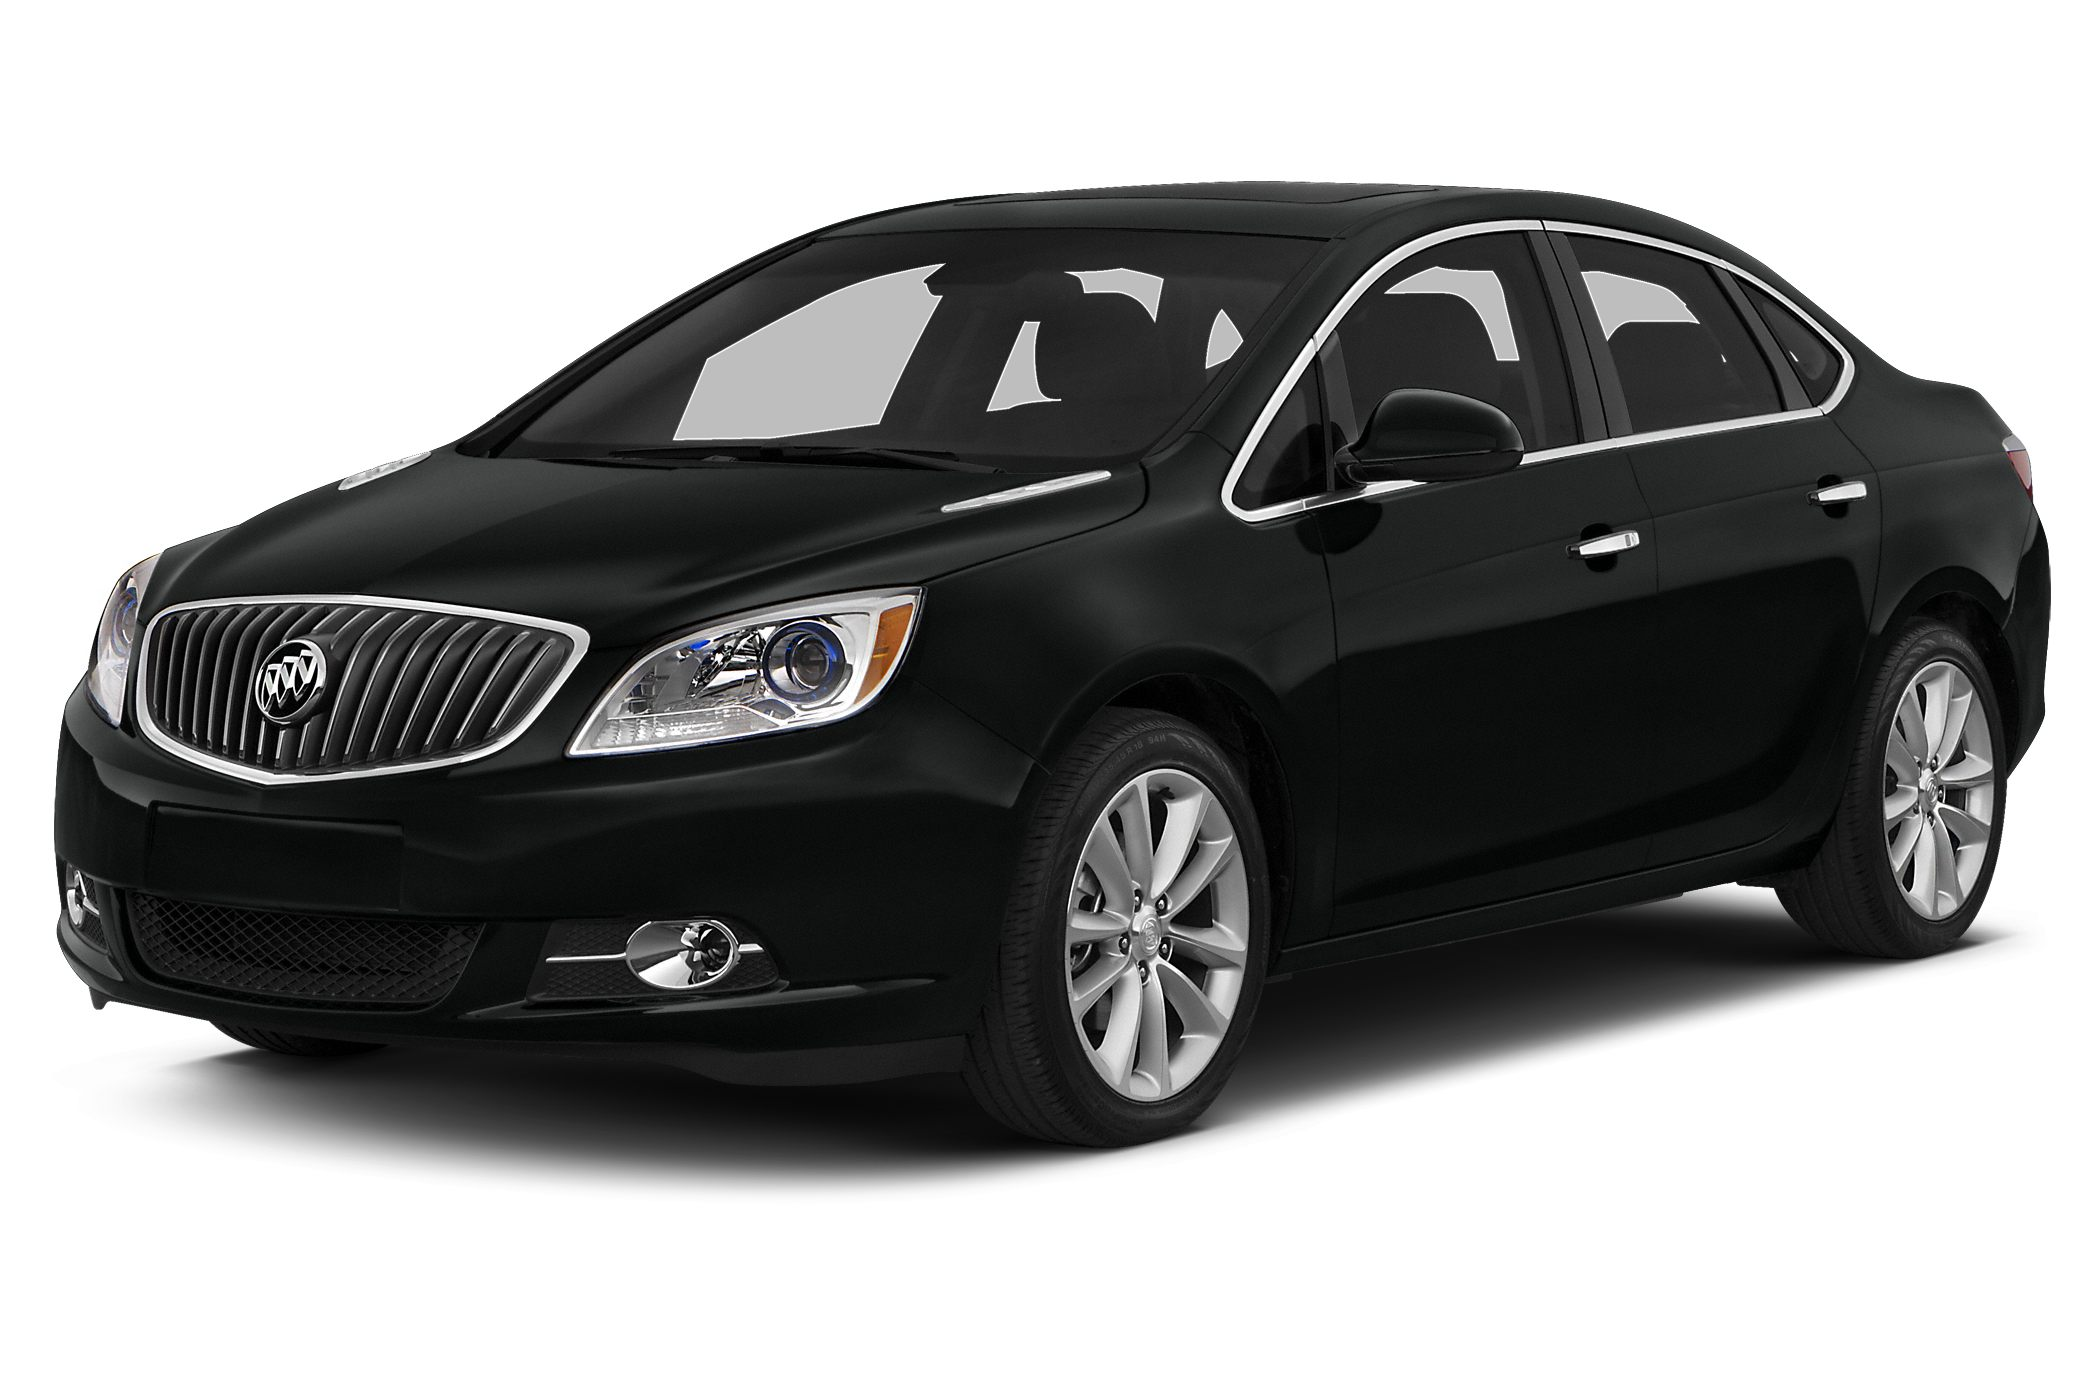 2014 Buick Verano Leather Group Sedan for sale in Williamsburg for $30,755 with 0 miles.